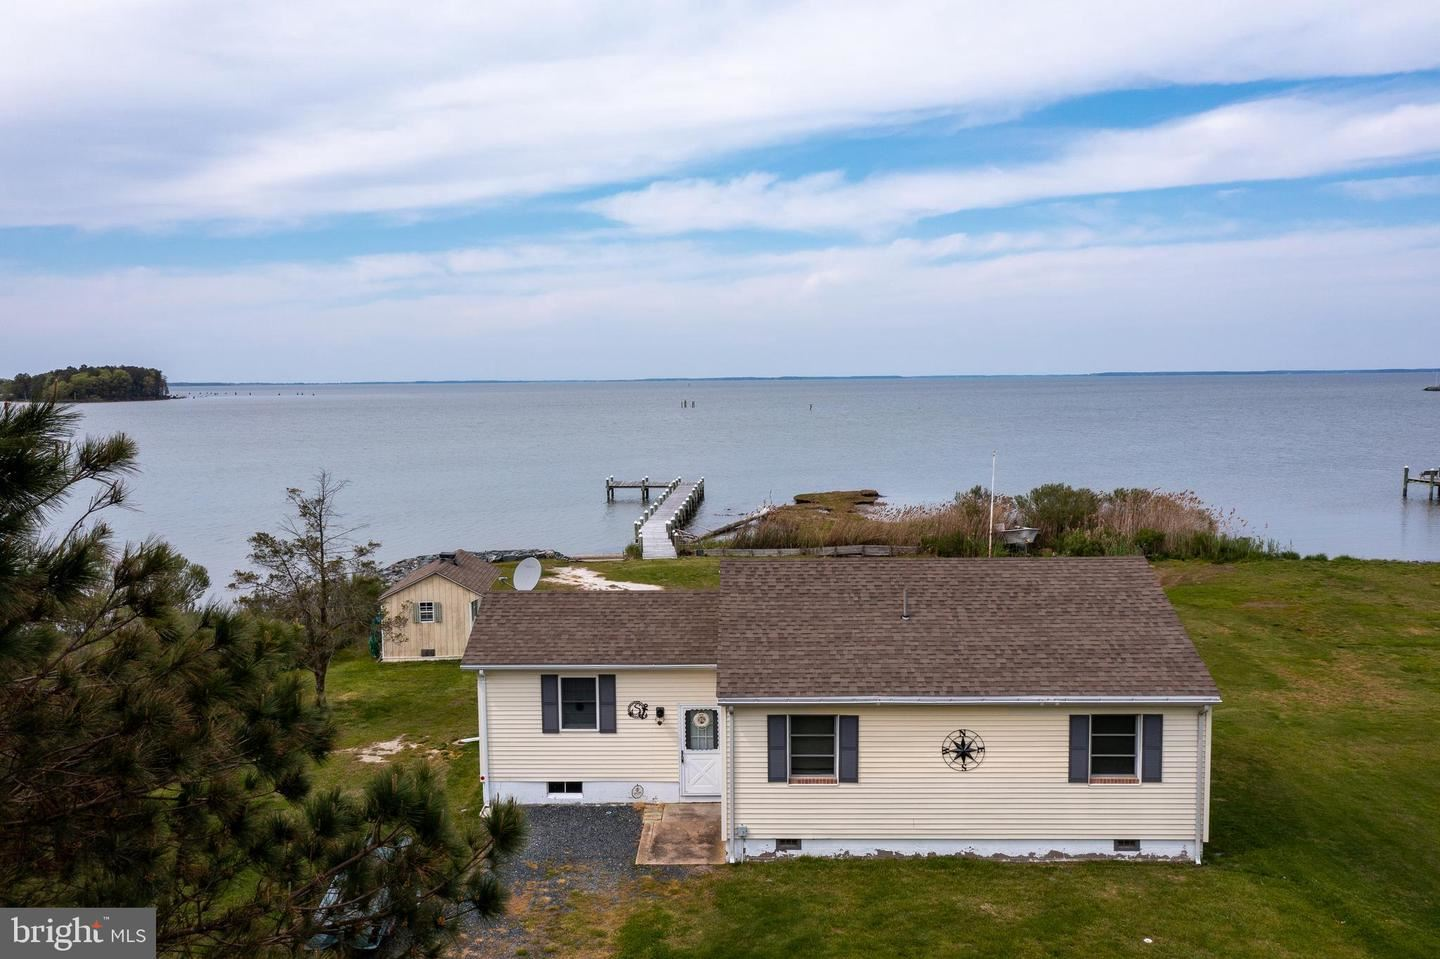 712 TWIN POINT COVE RD, Cambridge, MD 21613 - MLS#: MDDO127258